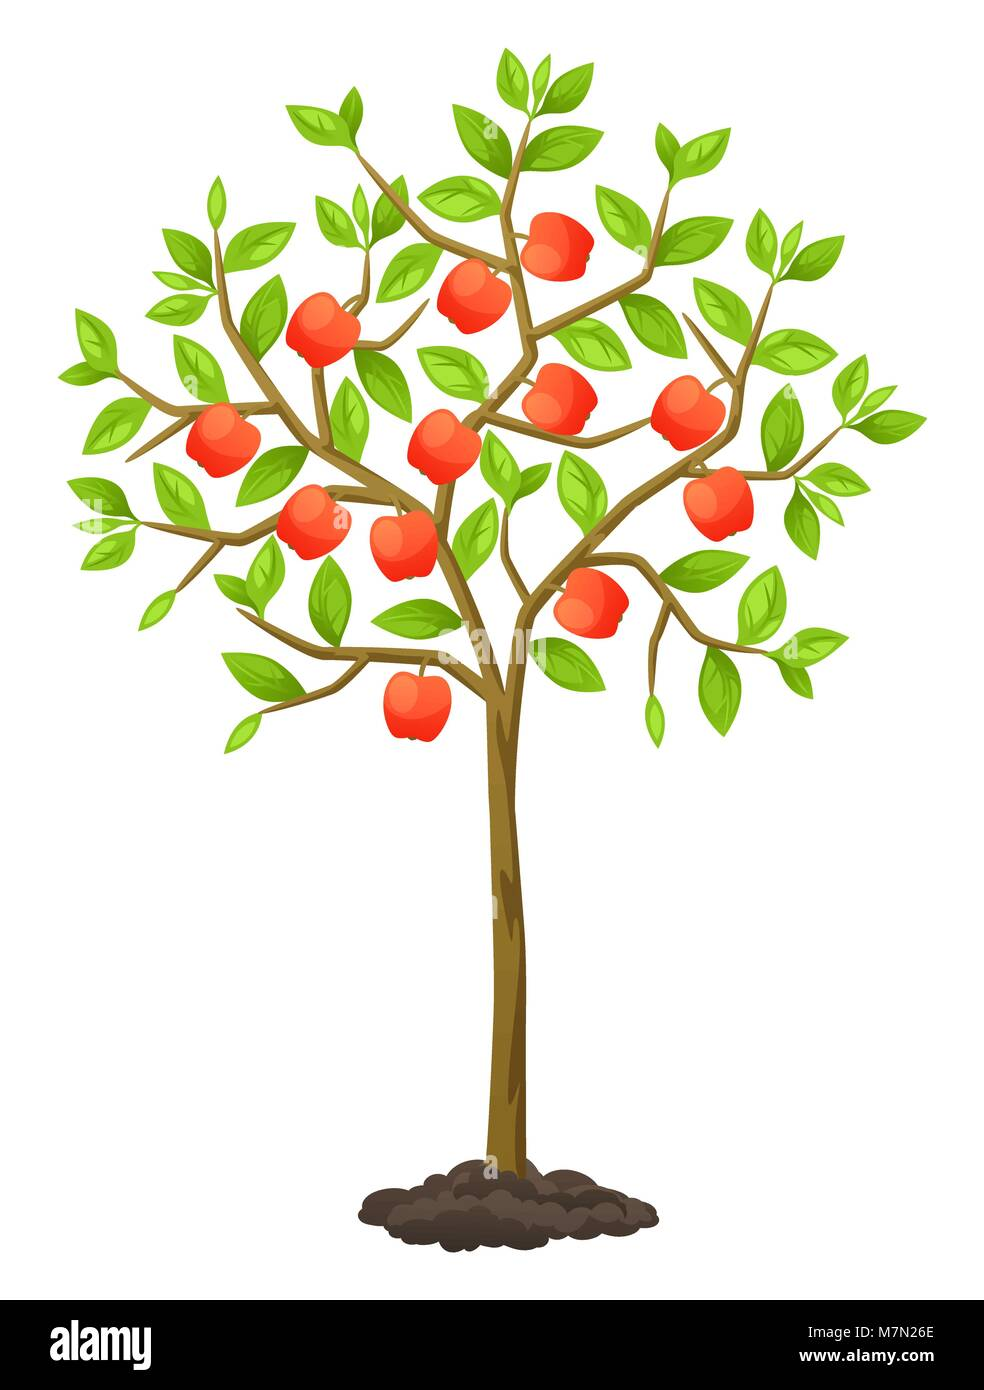 Fruit tree with apples. Illustration for agricultural booklets, flyers garden - Stock Vector